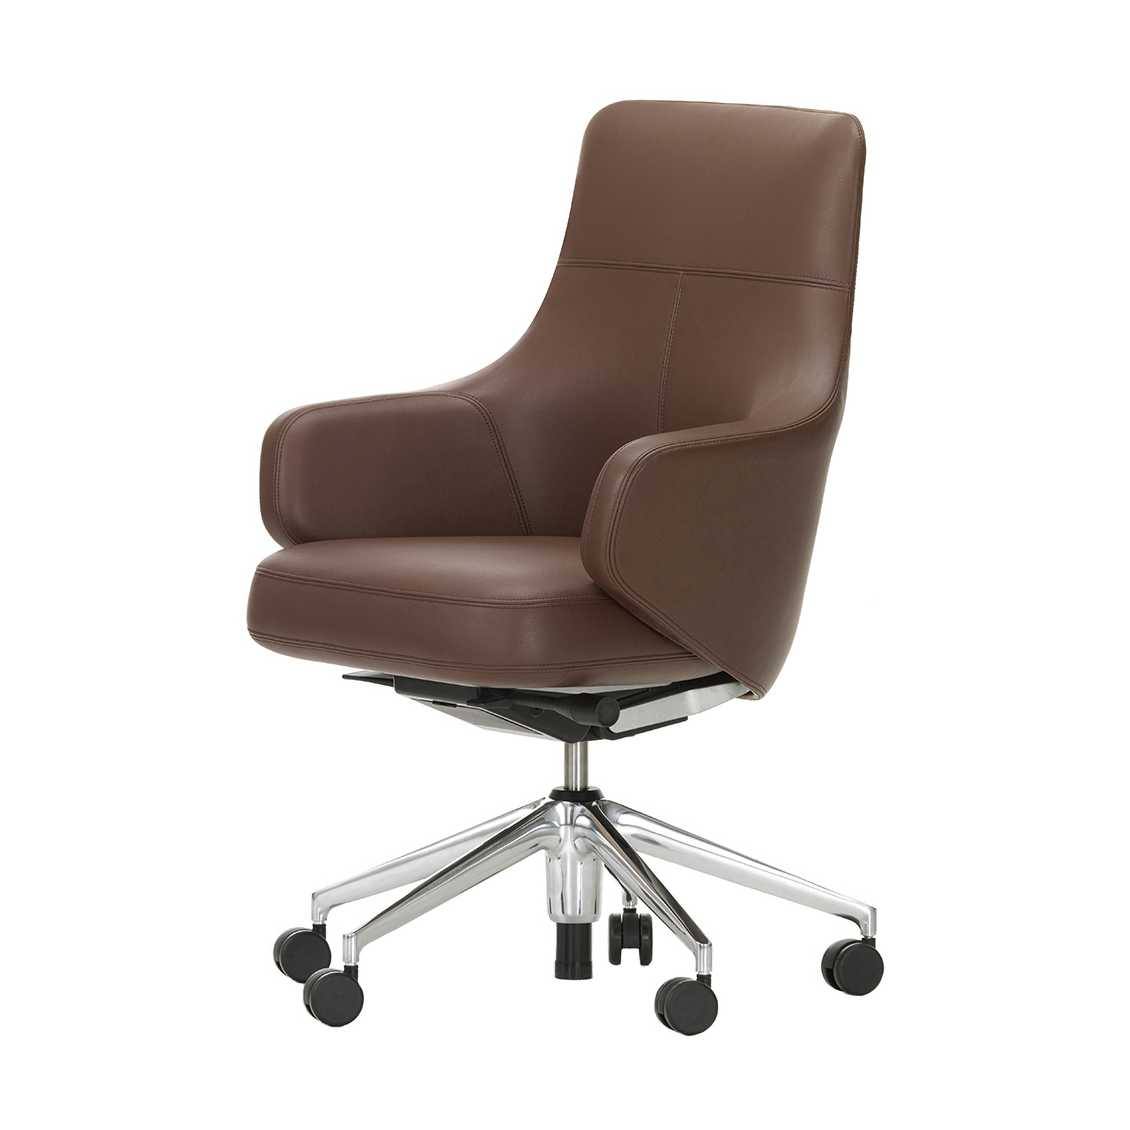 Vitra Grand Executive Lowback Bureaustoel